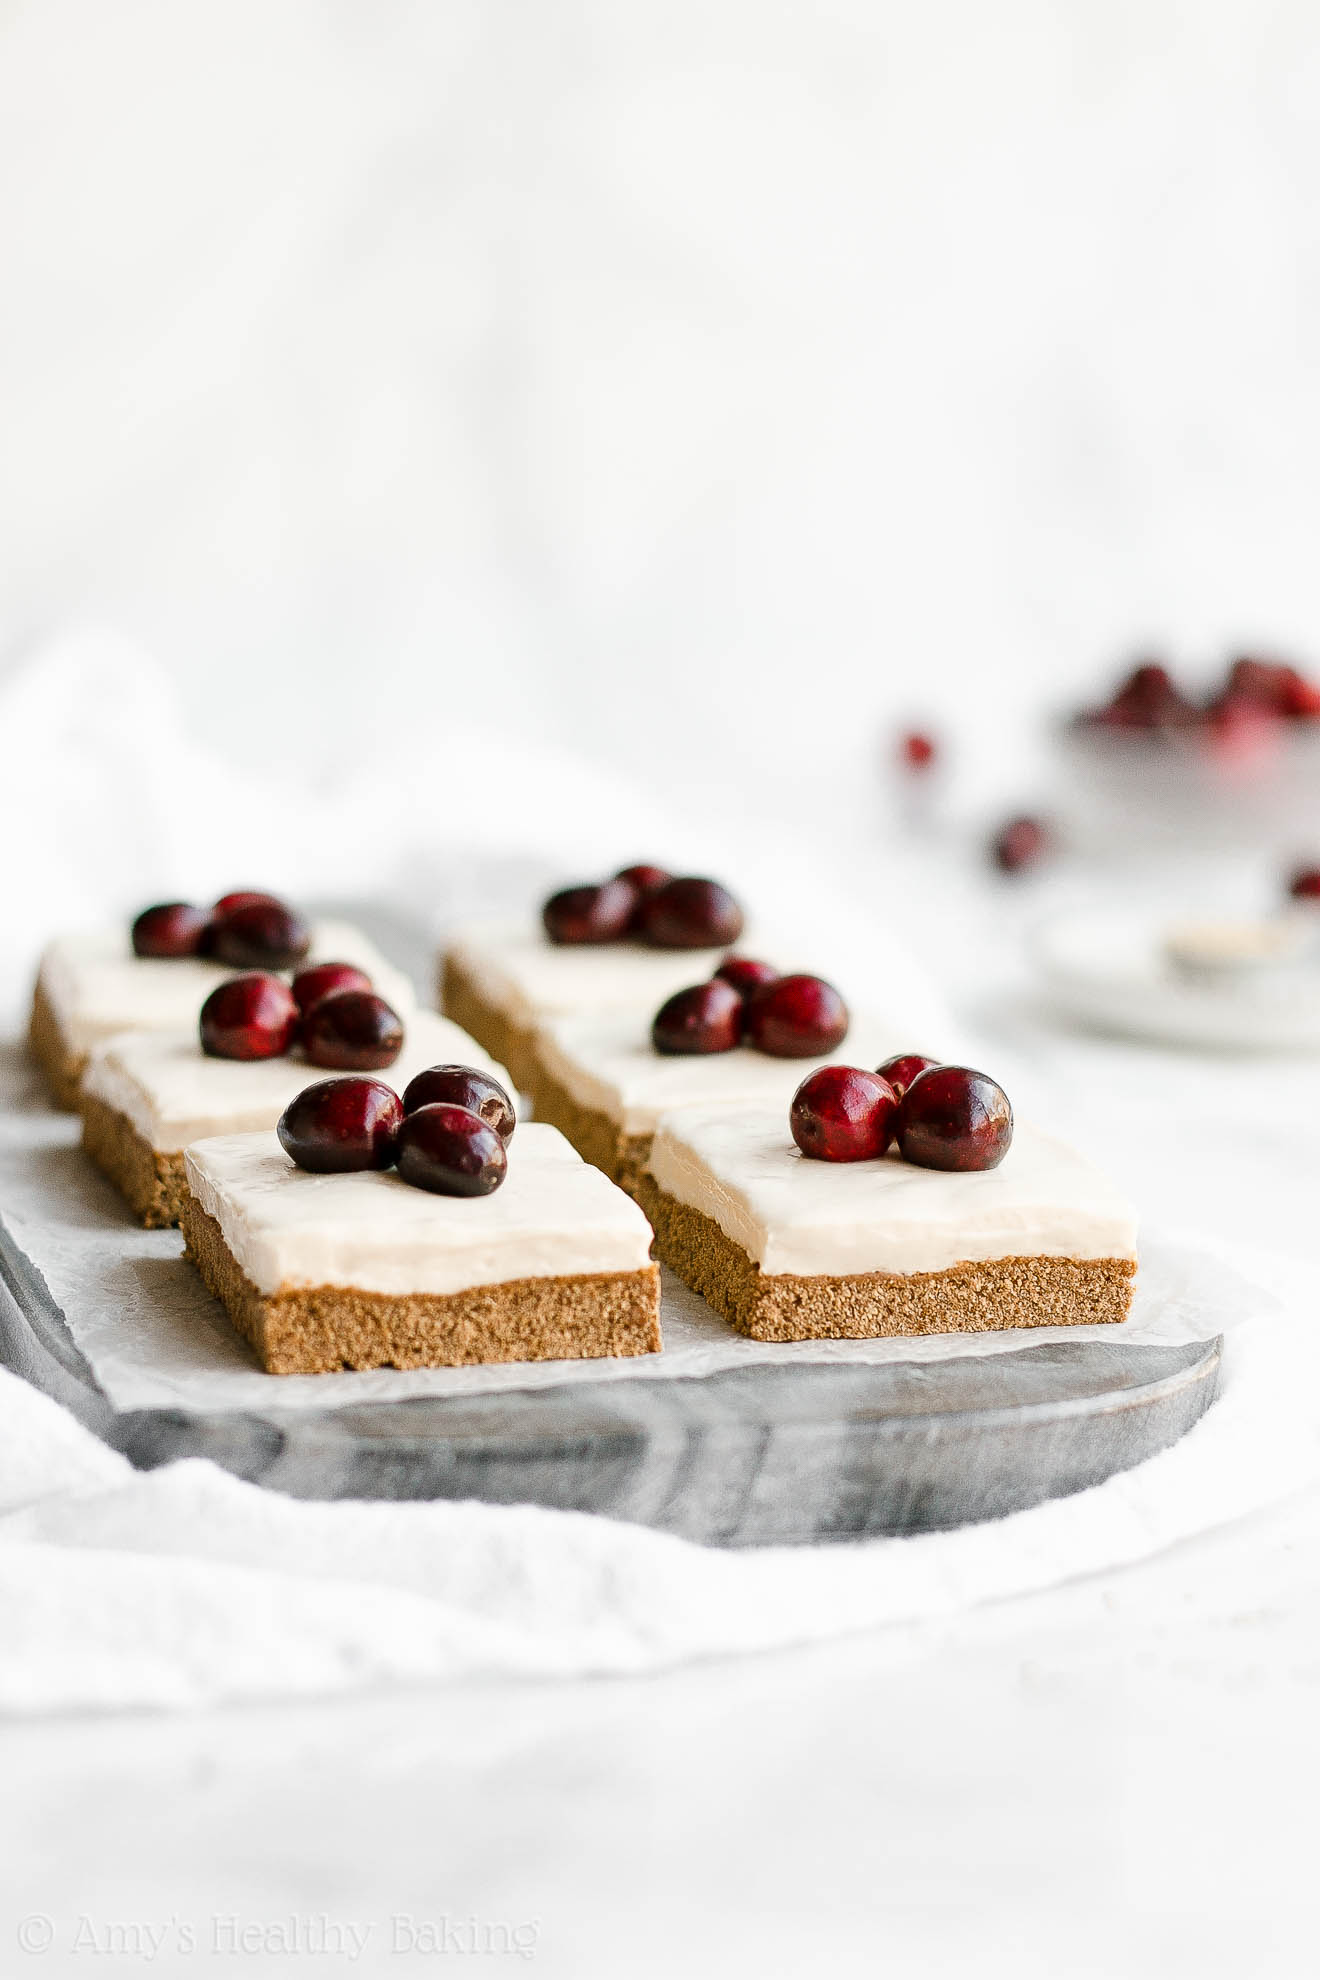 Easy Healthy Low Calorie Gluten Free Chewy Gingerbread Cookie Bars